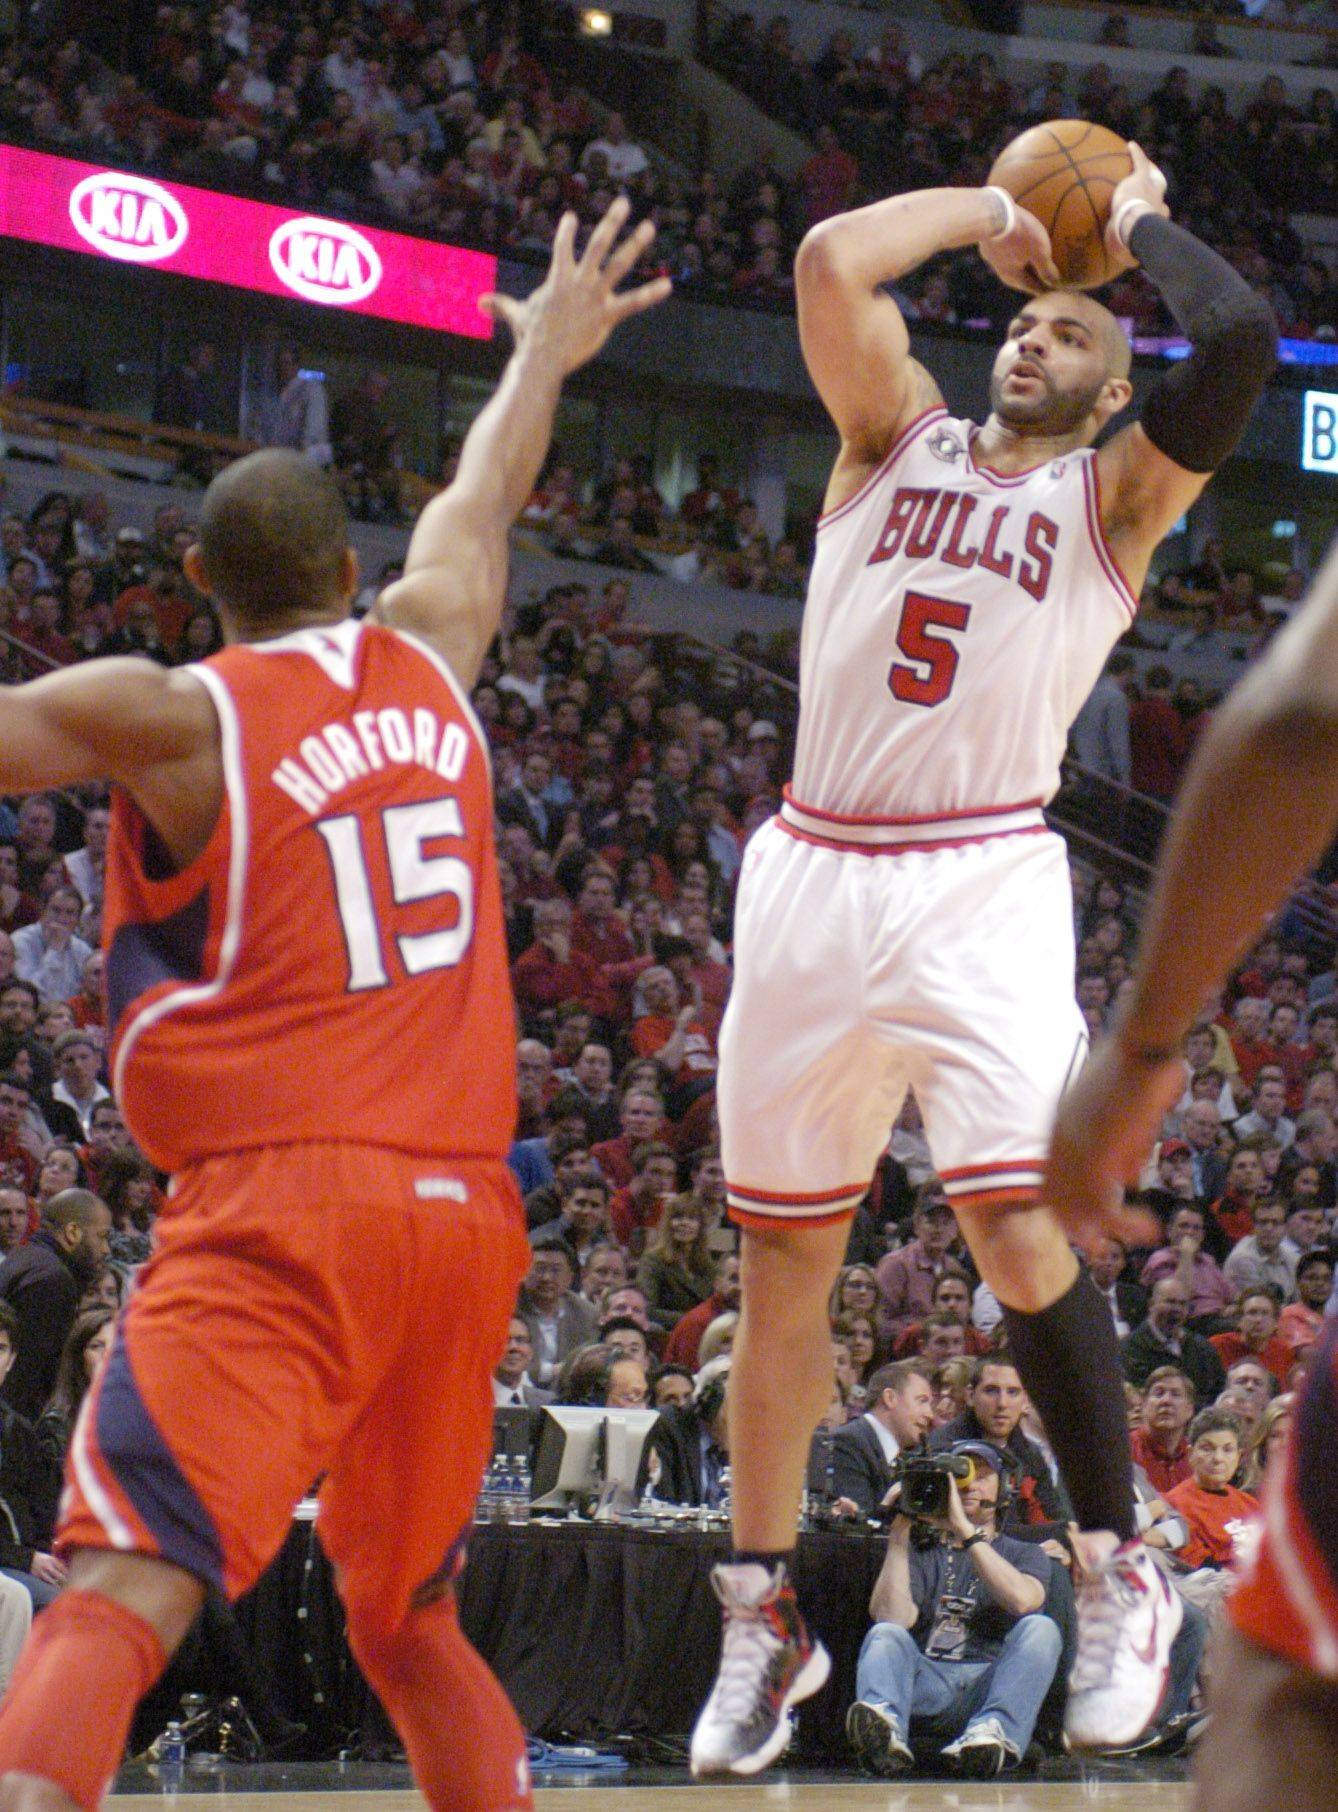 Al Horford of the Hawks tries to get a hand up as Carlos Boozer shoots a jump shot.